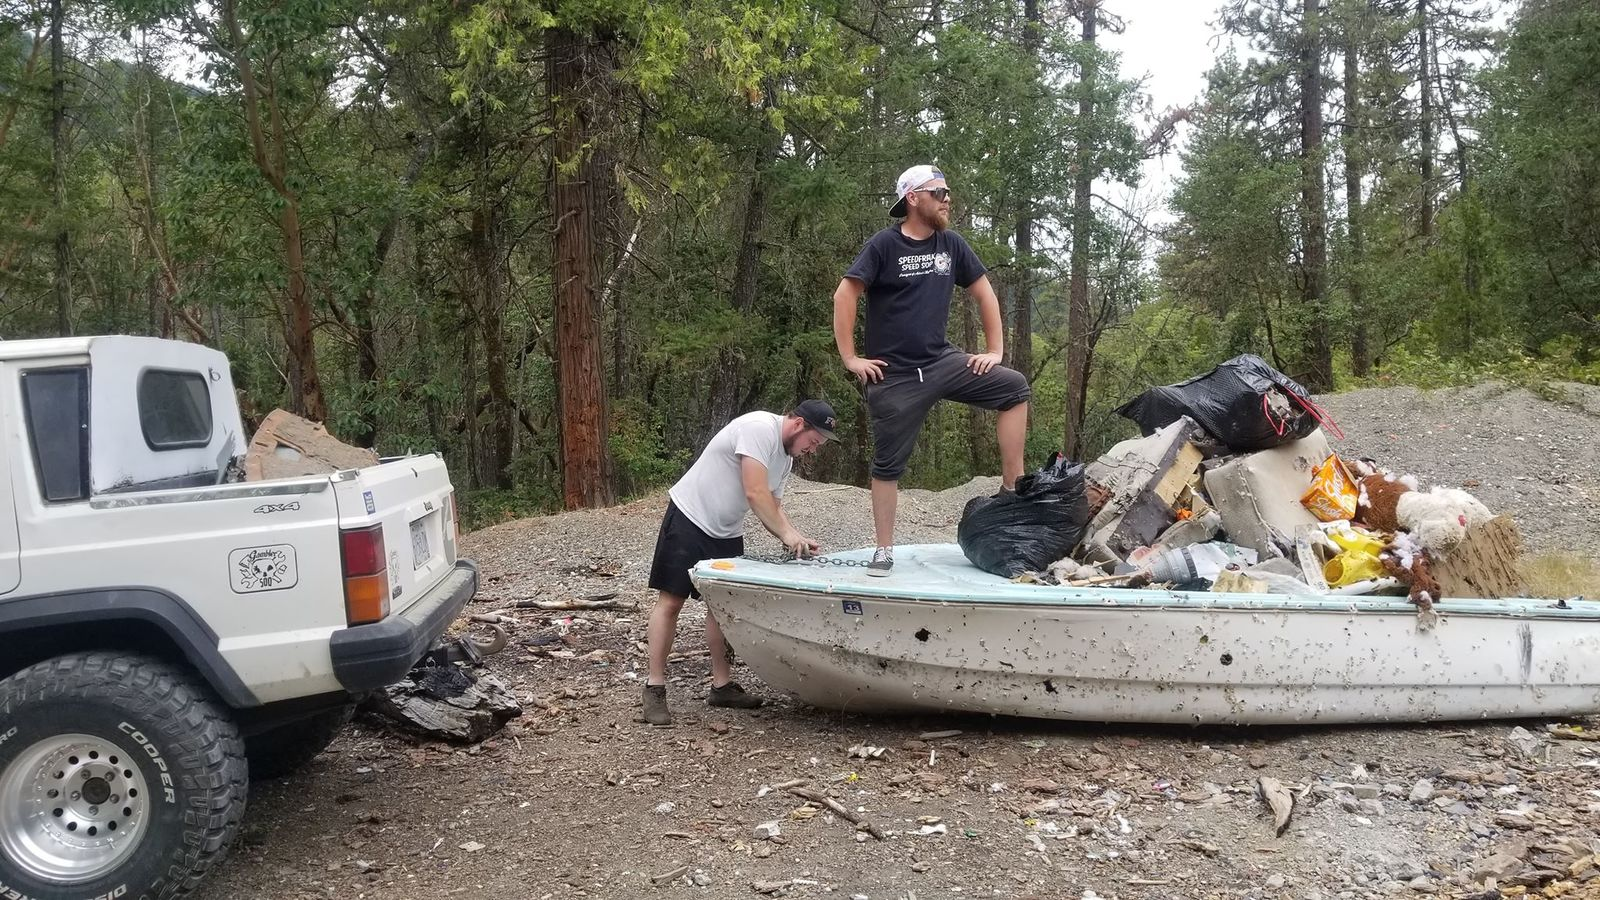 A boat filled with junk that they found in the forest. (Courtesy: Sam Watson){&nbsp;}<p></p><p></p>